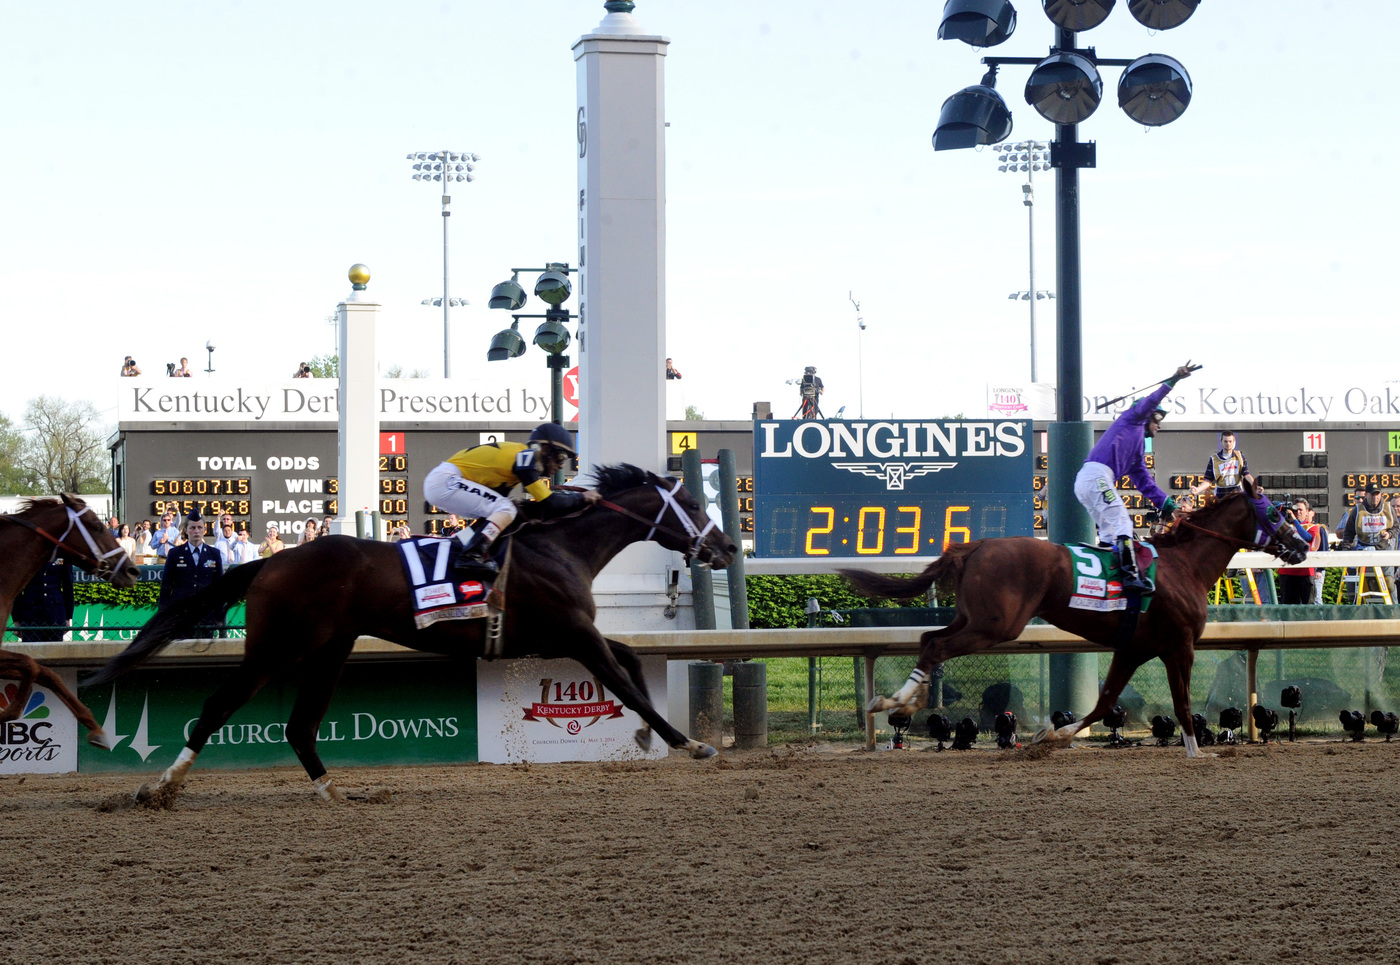 Longines Flat Racing Event: California Chrome wins the 140 Kentucky Derby 1